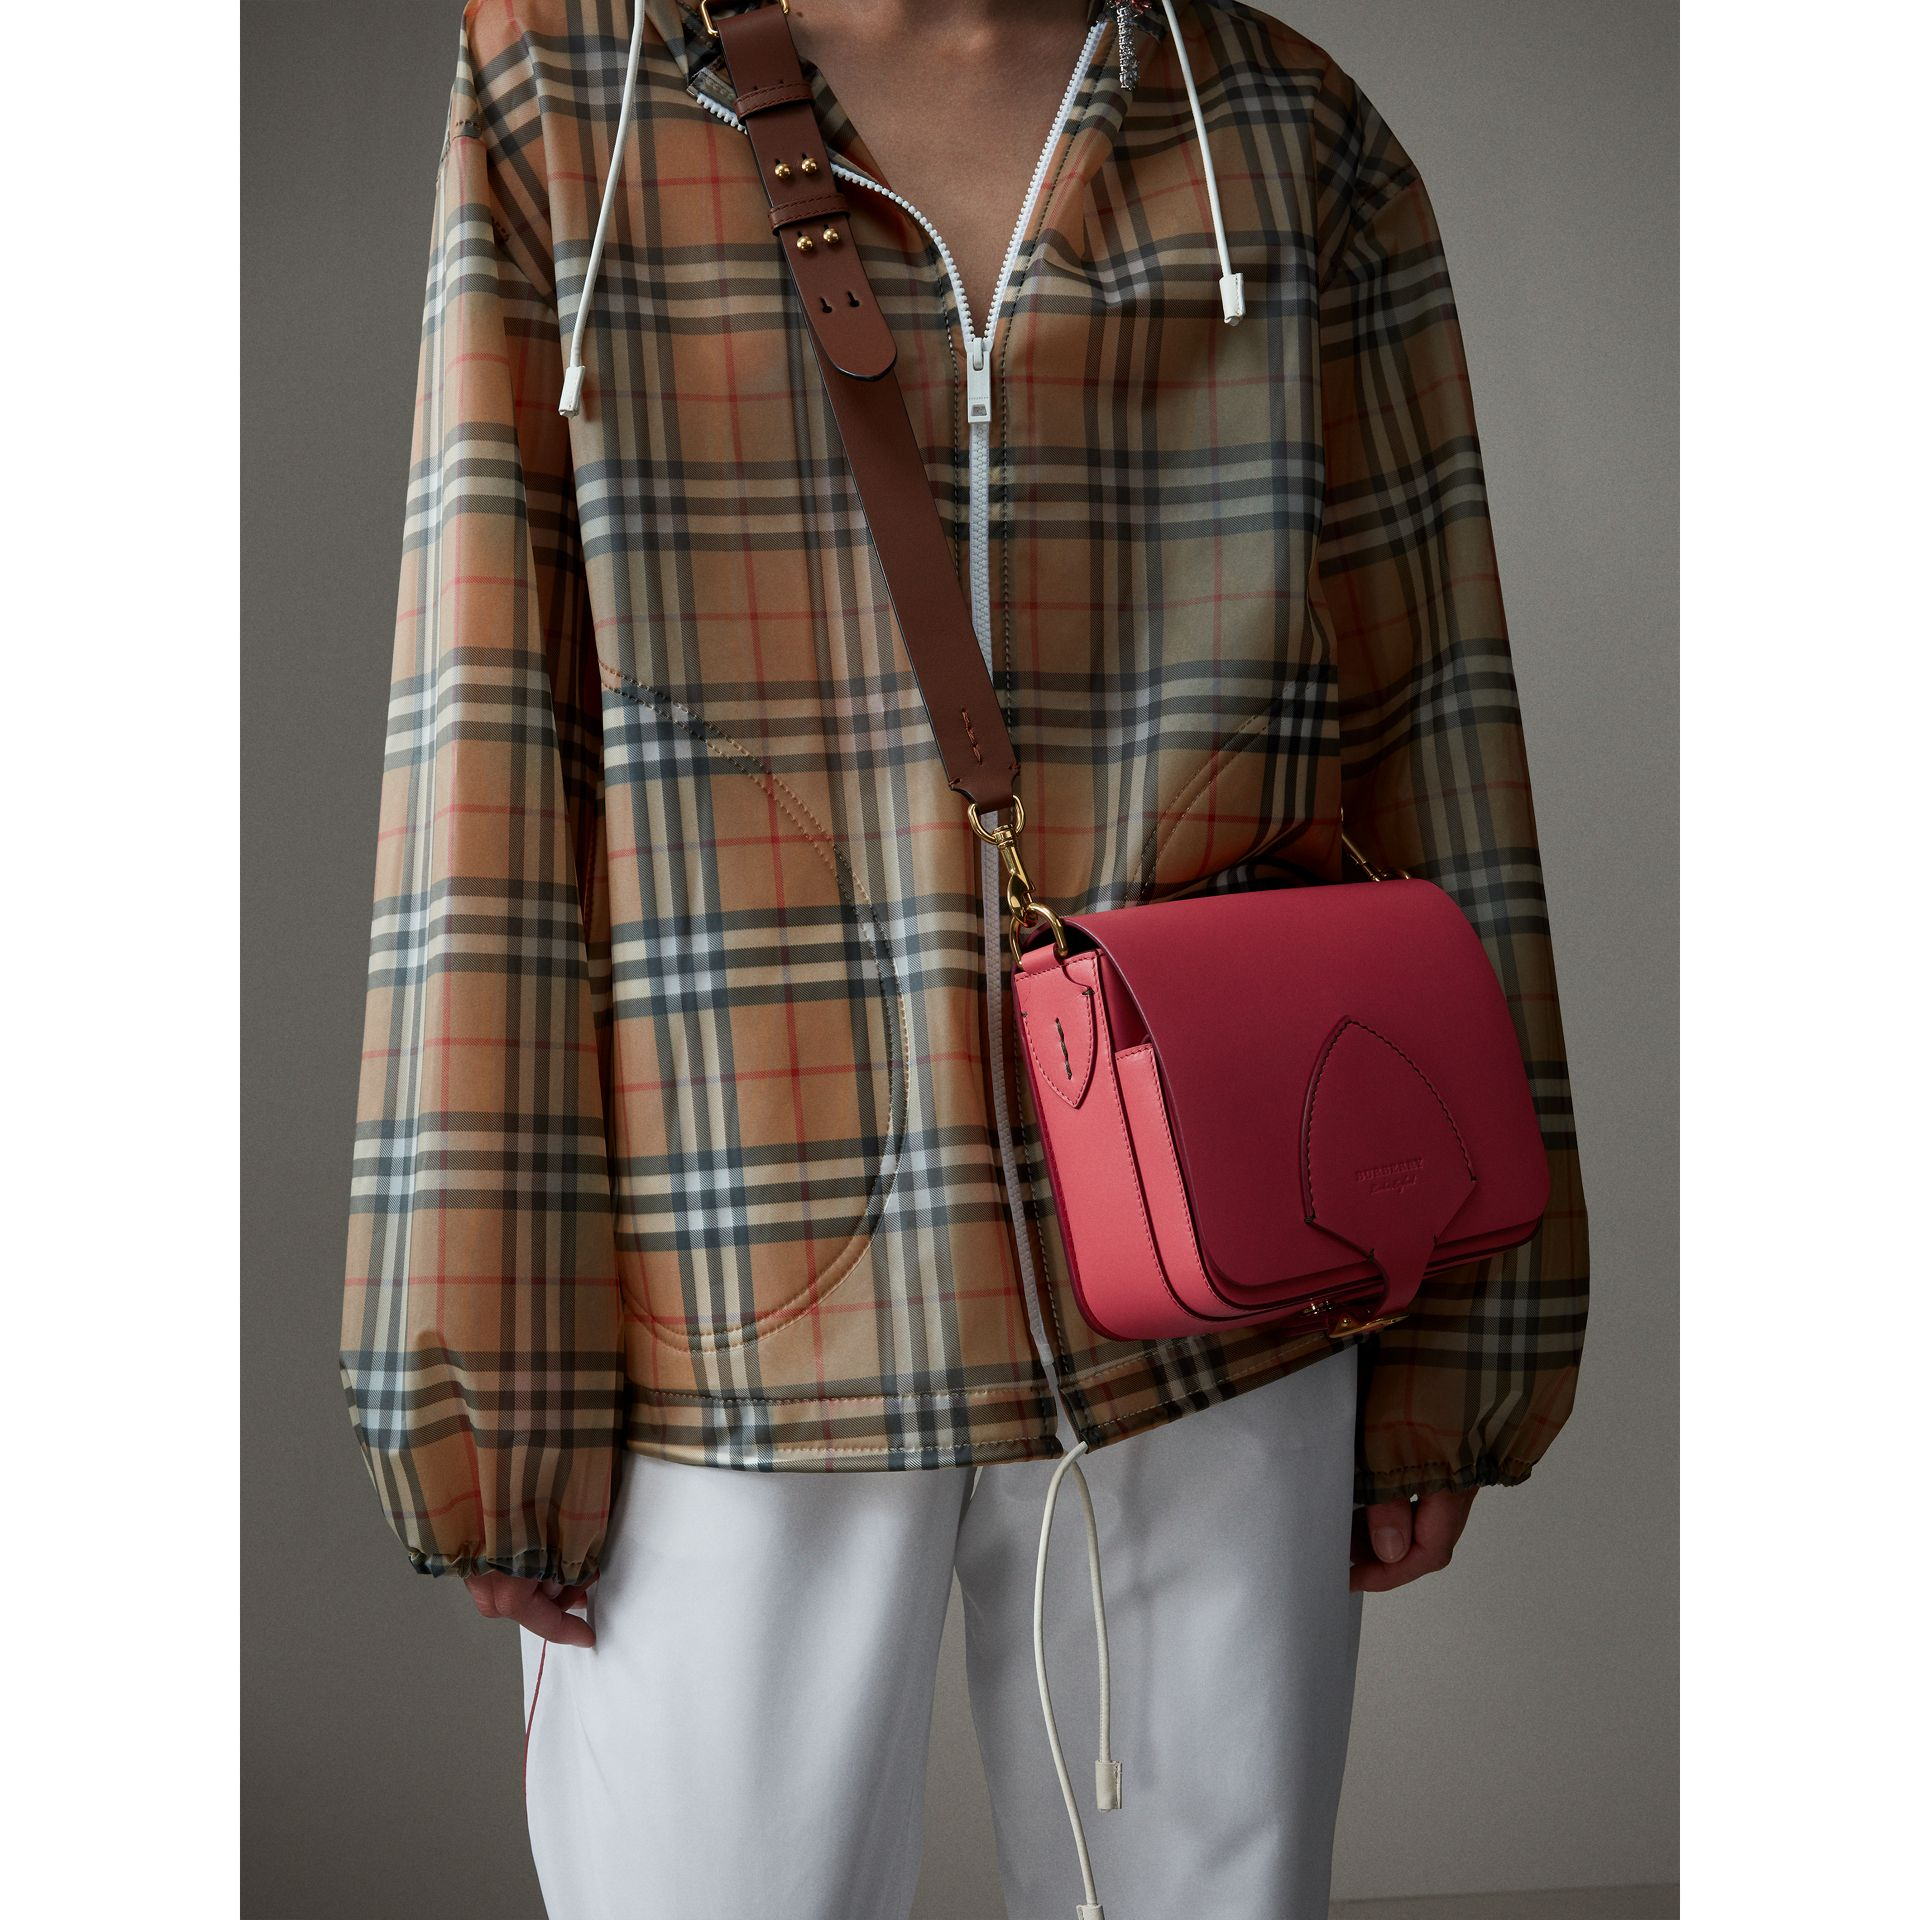 Sac The Satchel carré en cuir (Pivoine Vif) - Femme | Burberry - photo de la galerie 2